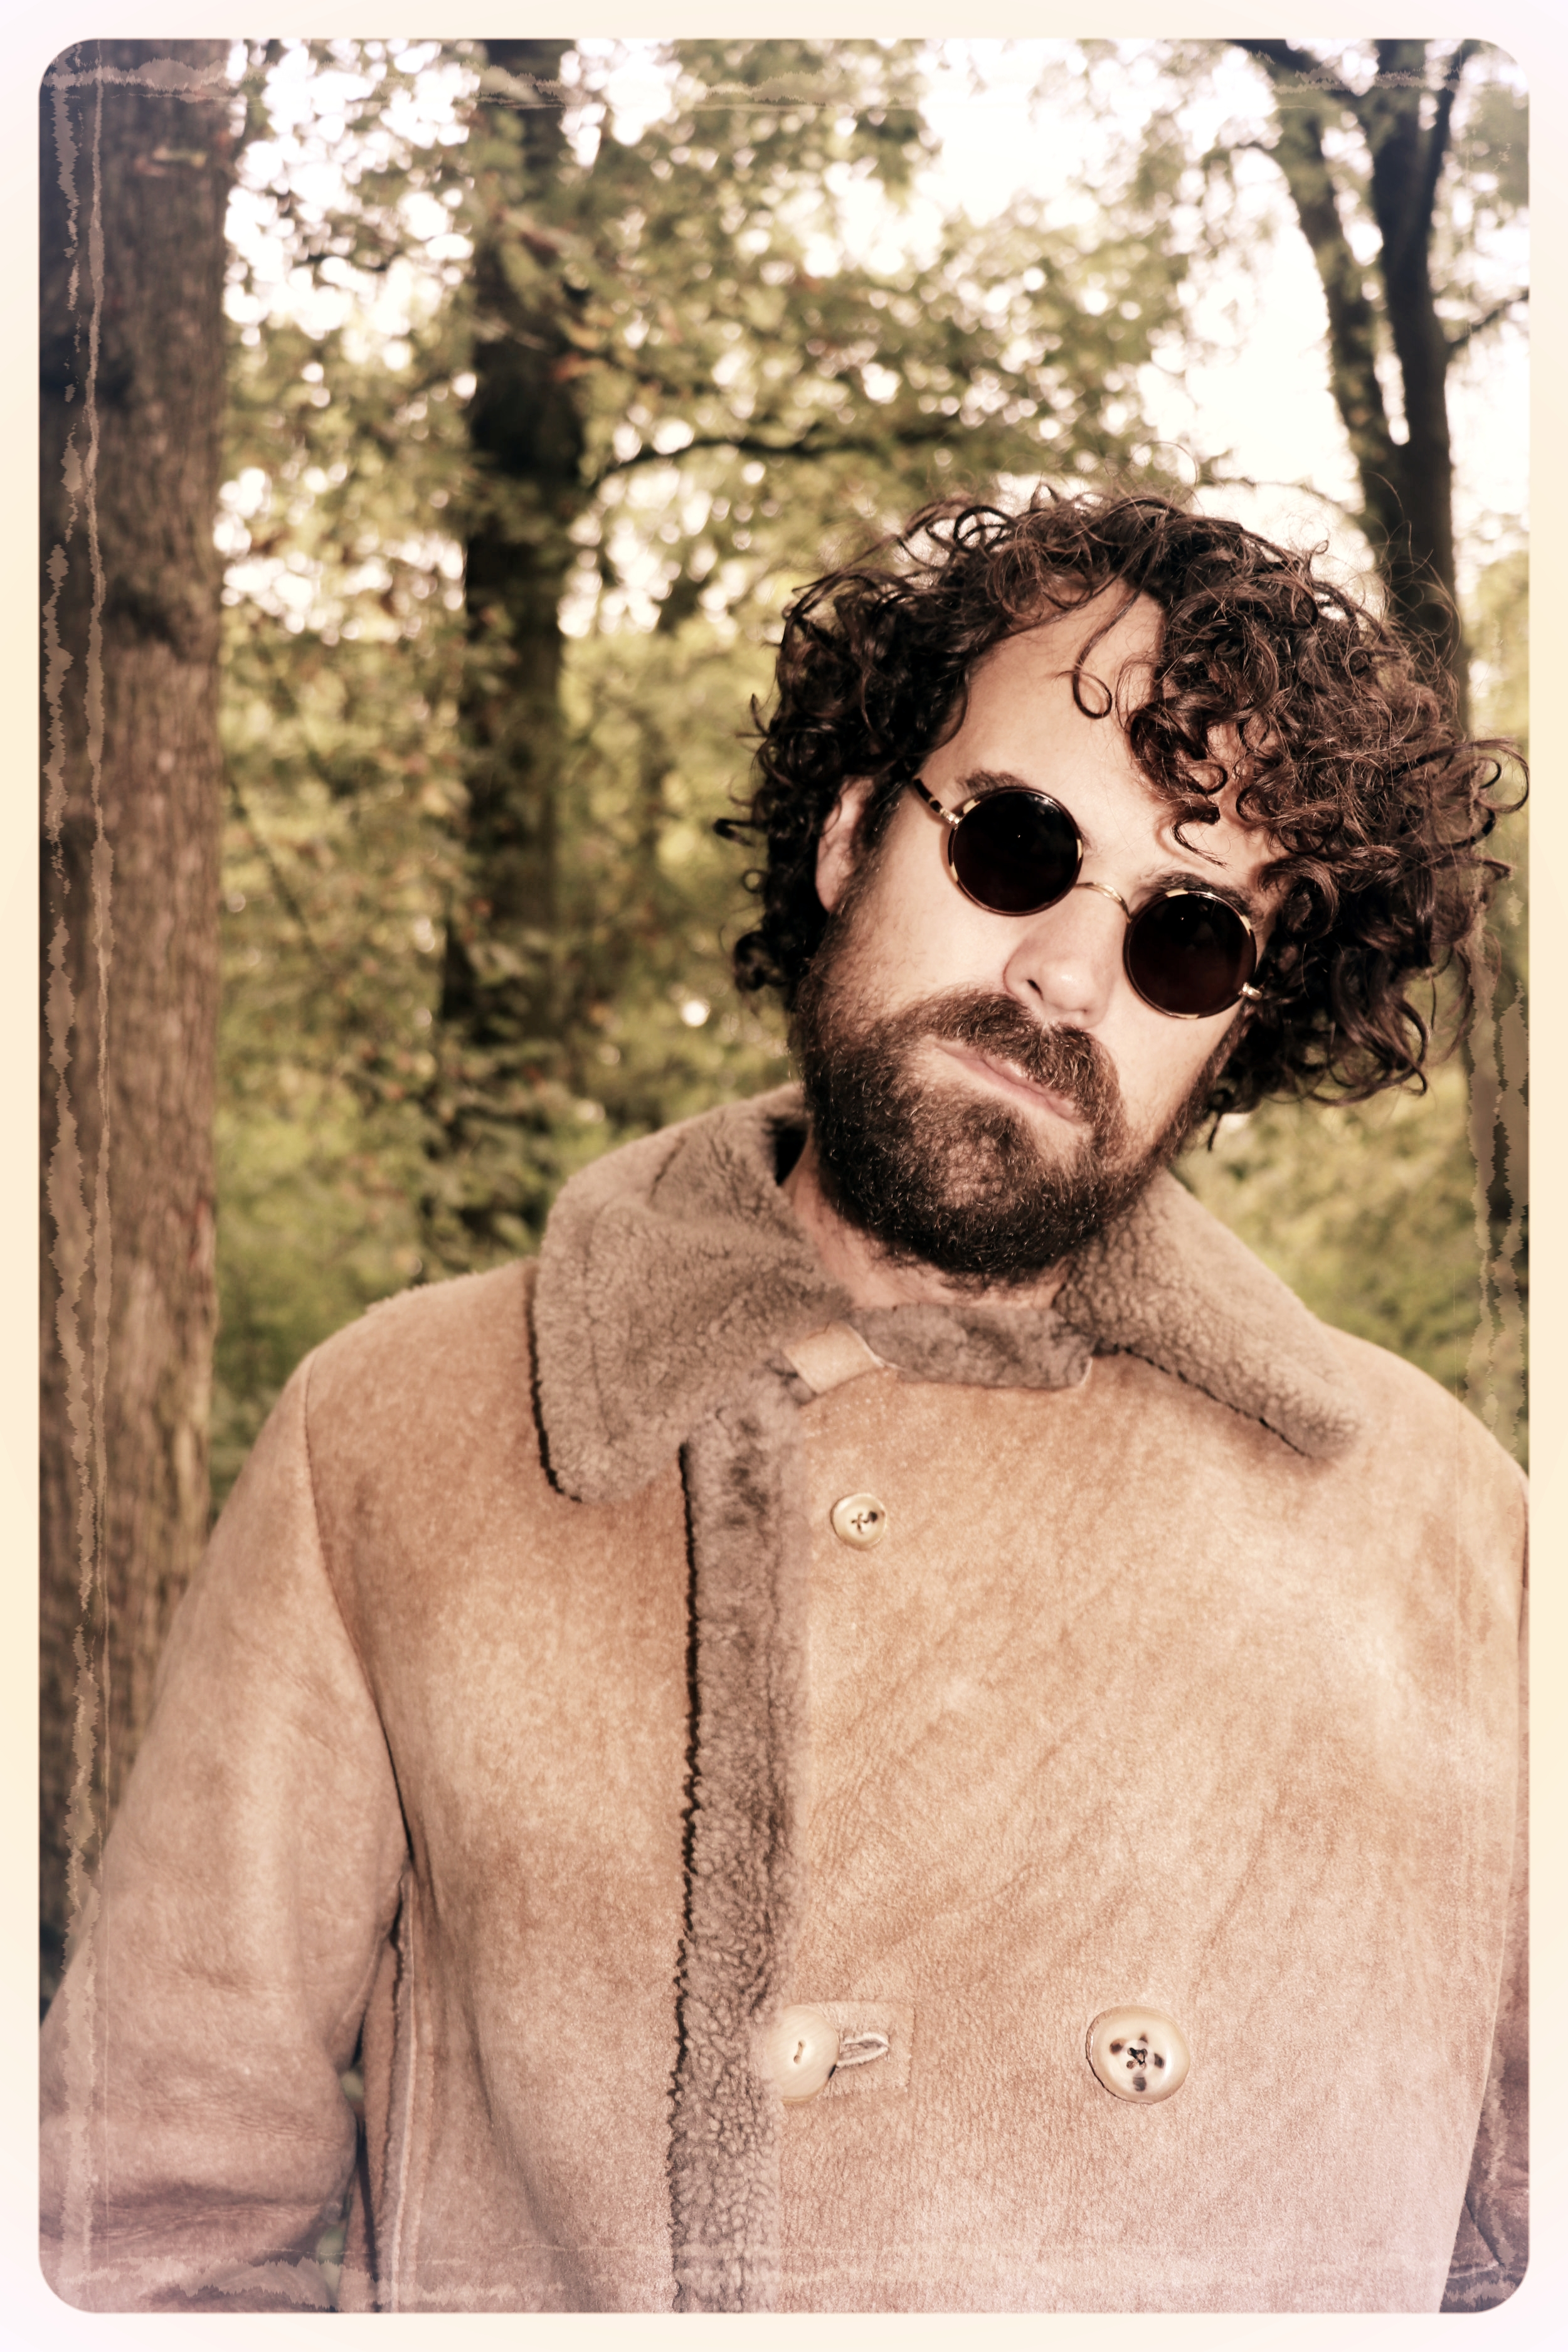 Peep Eyewear, Vintage Sunglasses, Max, 1930s, Worn in the woods, Autumn Winter Collection